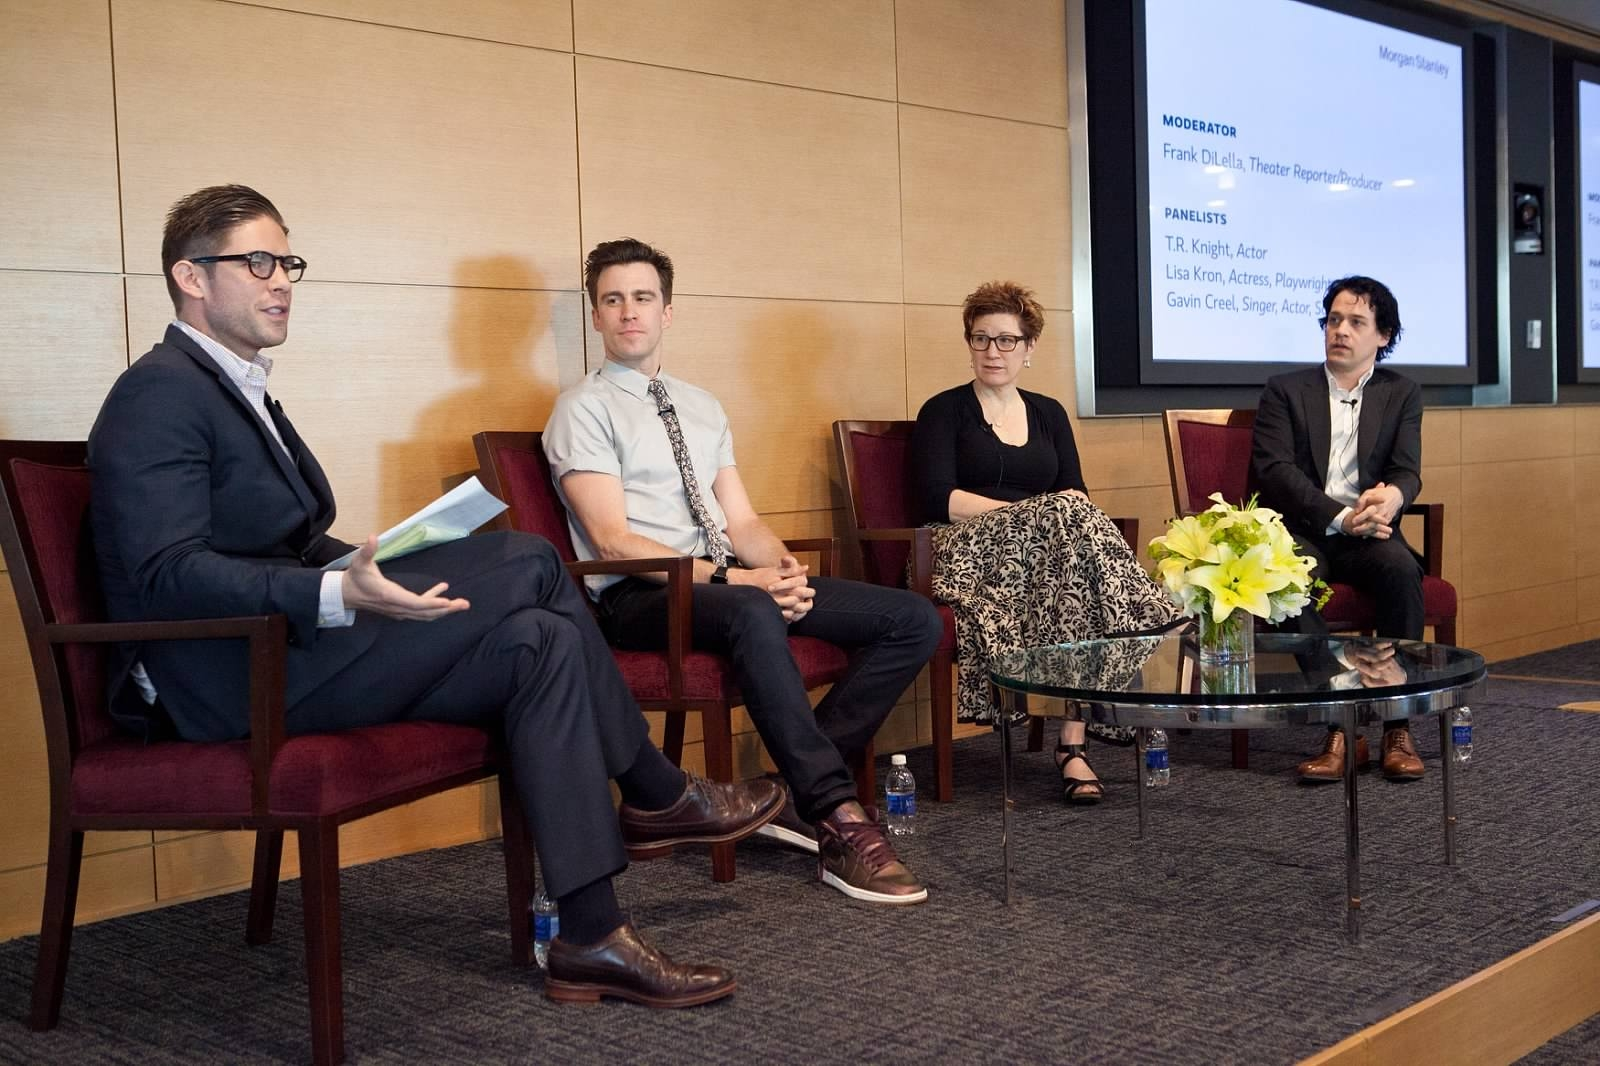 Frank DiLella, Gavin Creel, Lisa Kron and T.R. Knight, Morgan Stanley Wealth Management